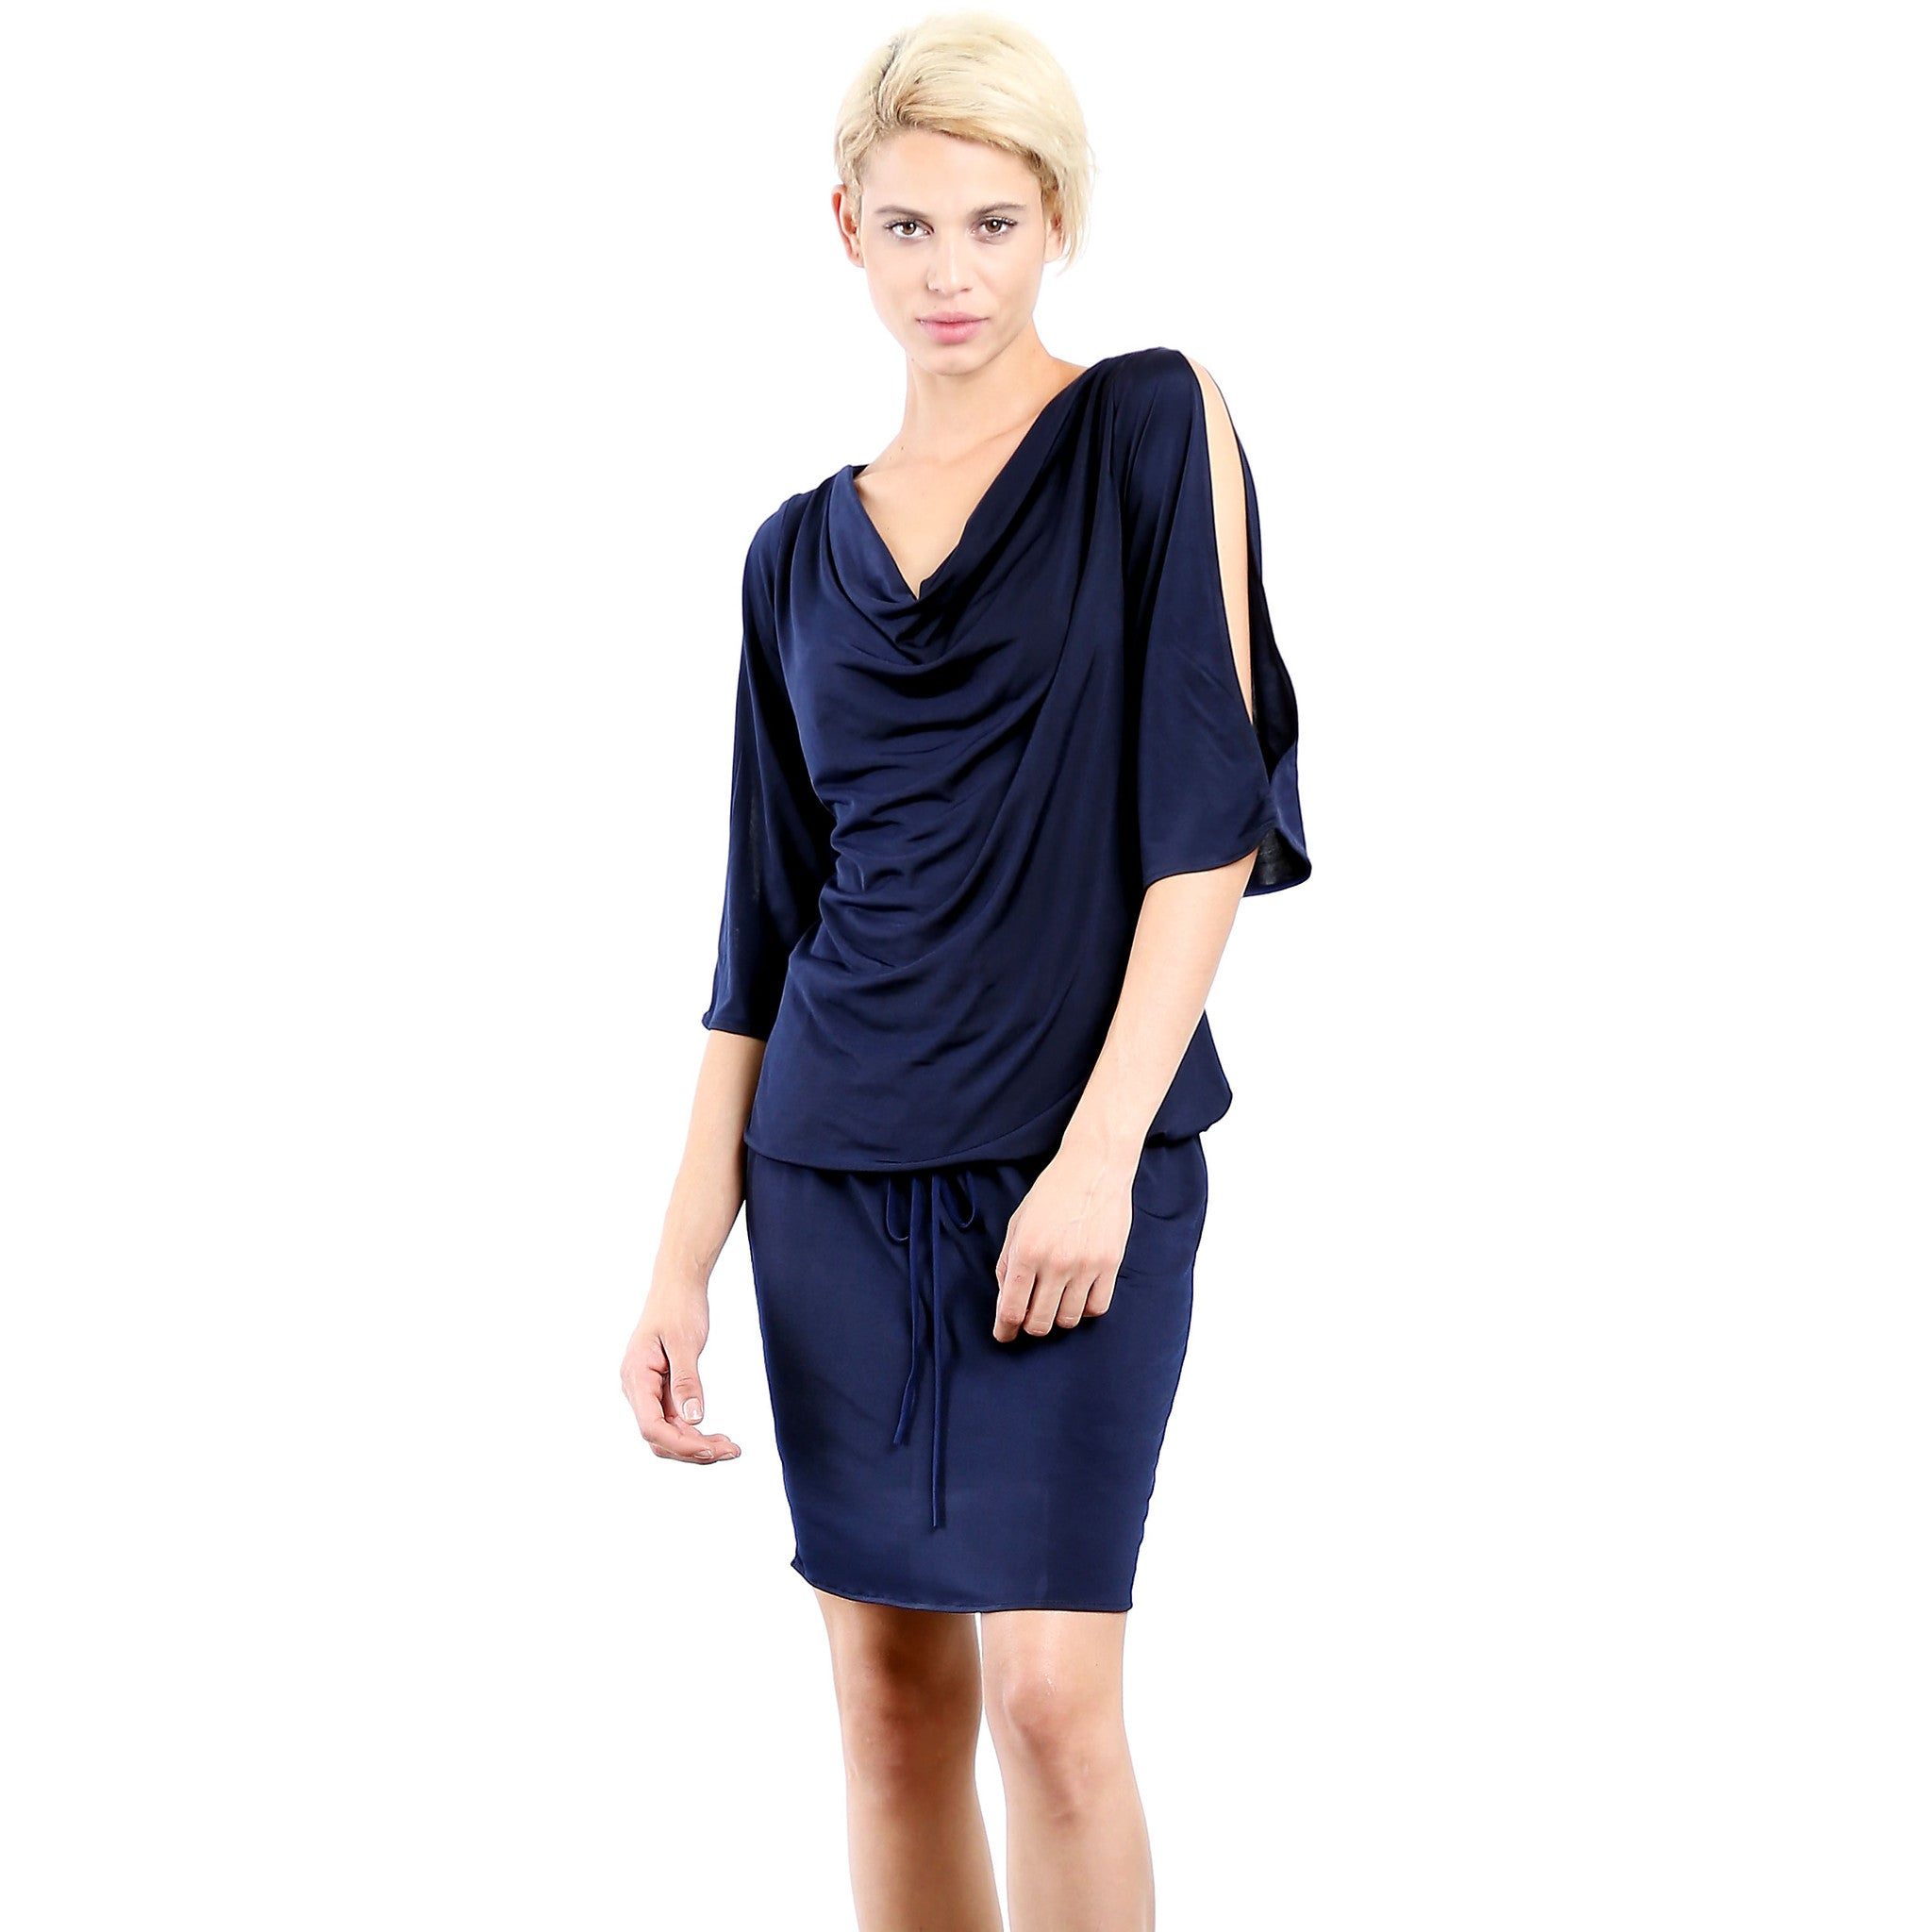 Evanese Women's Sexy Cowlneck Day Work Weekend Cocktail Dress with Slit-Sleeves XS, Navy